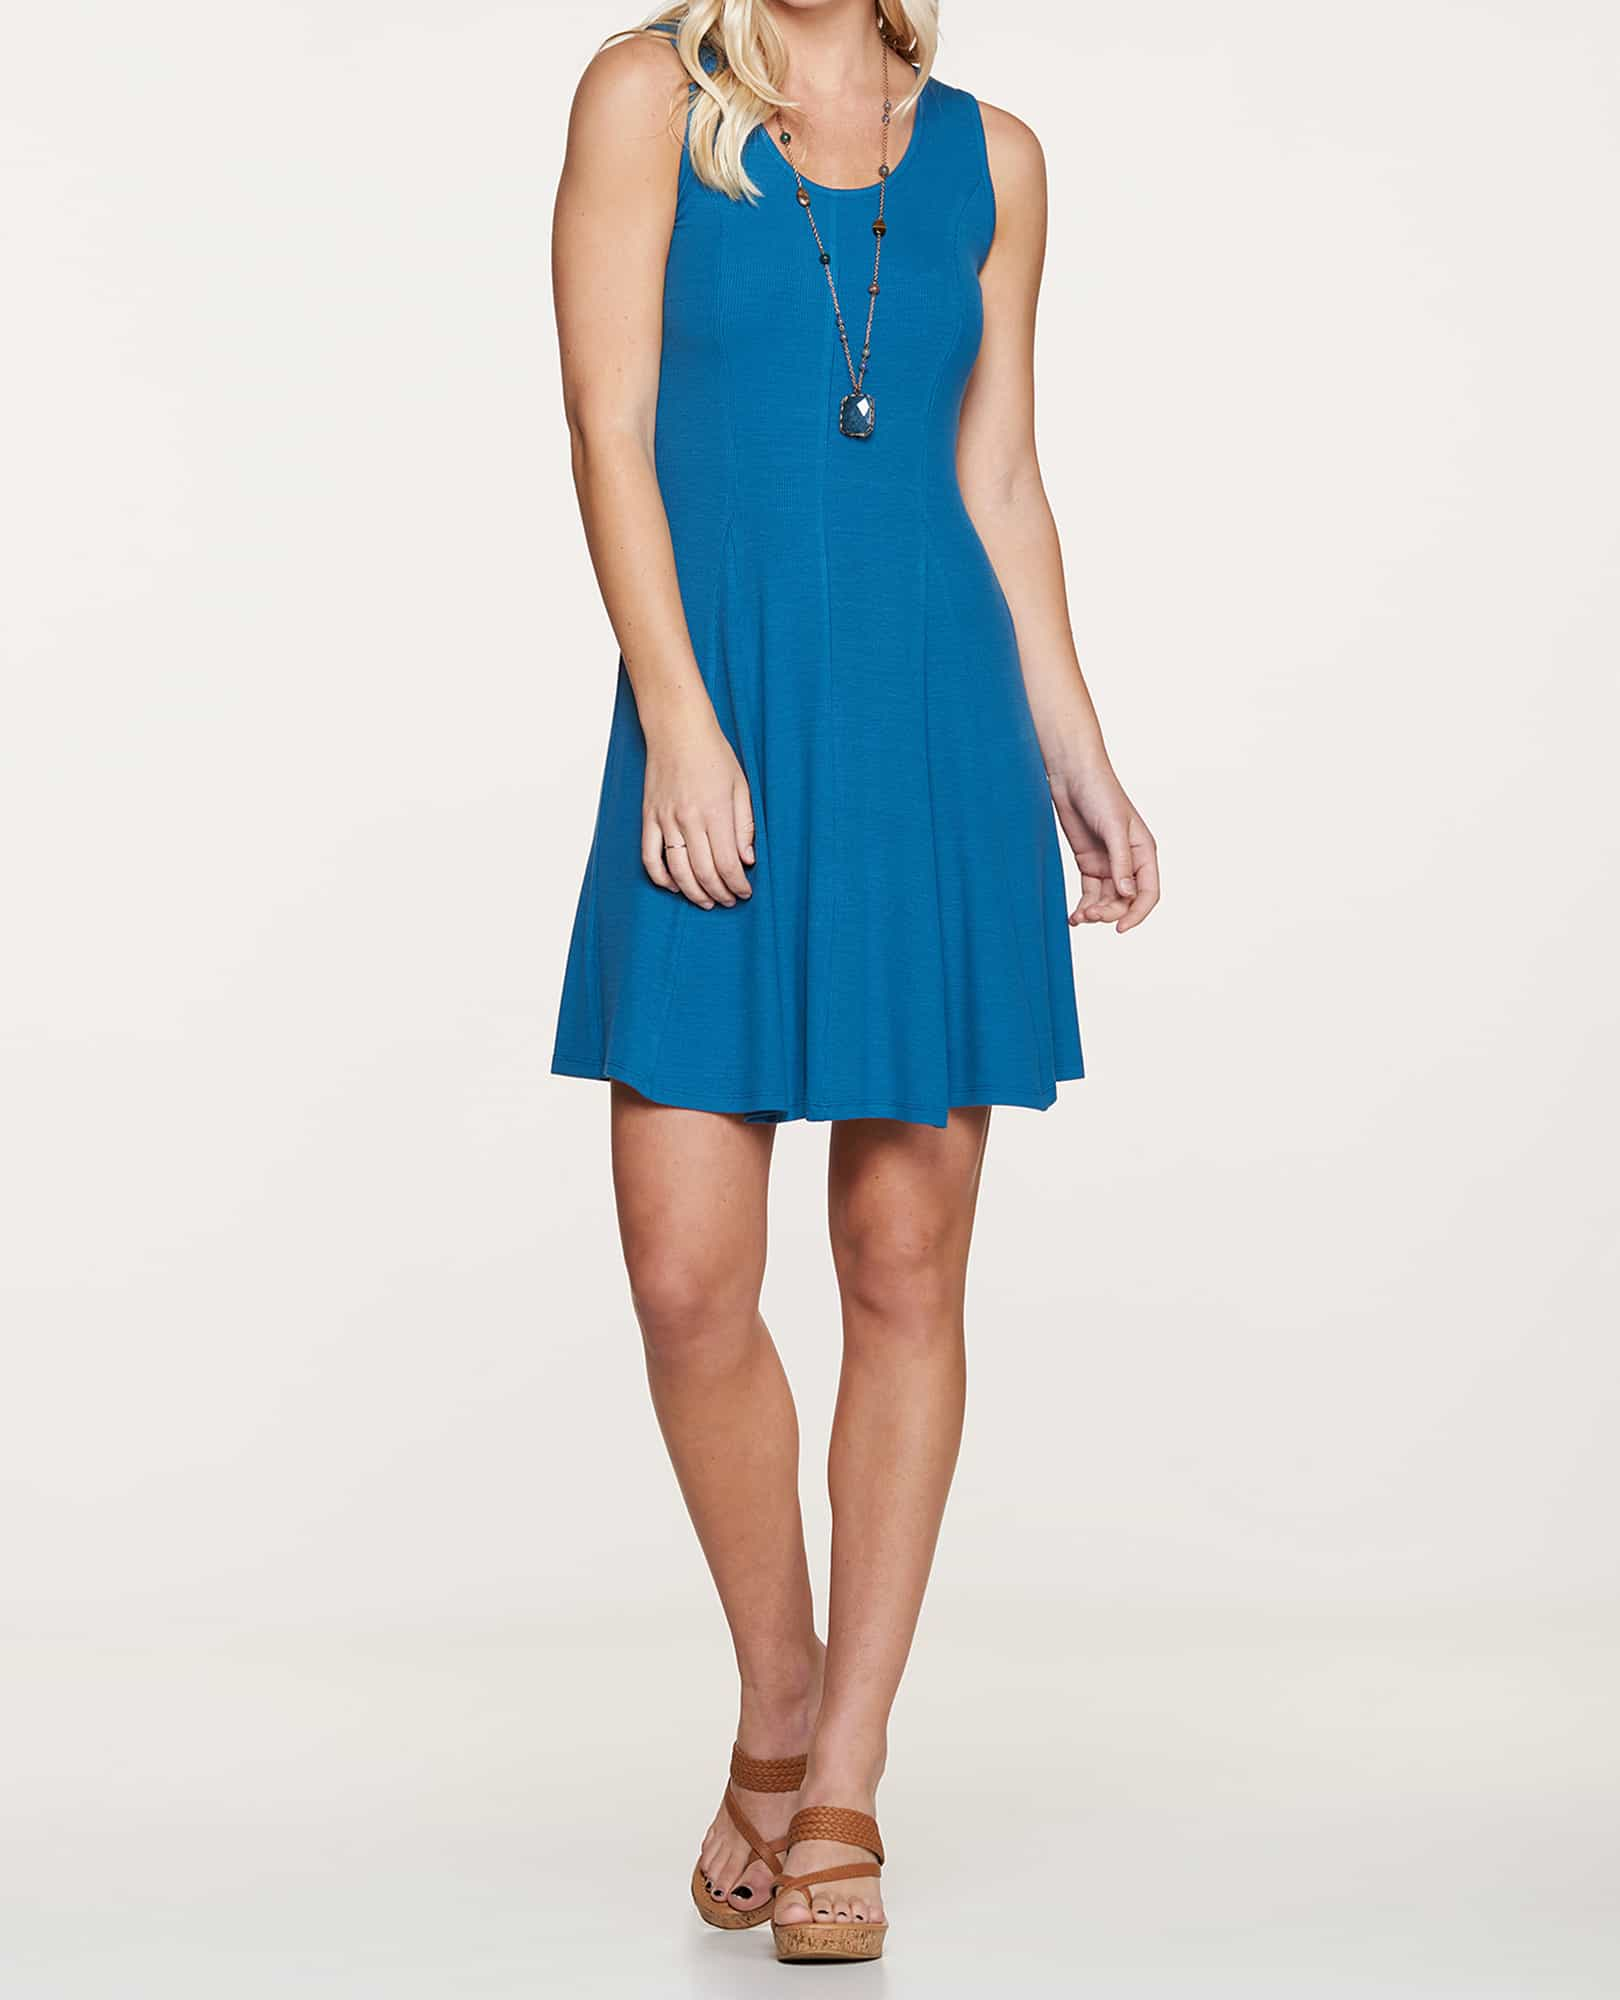 Daisy Rib Sleeveless Dress